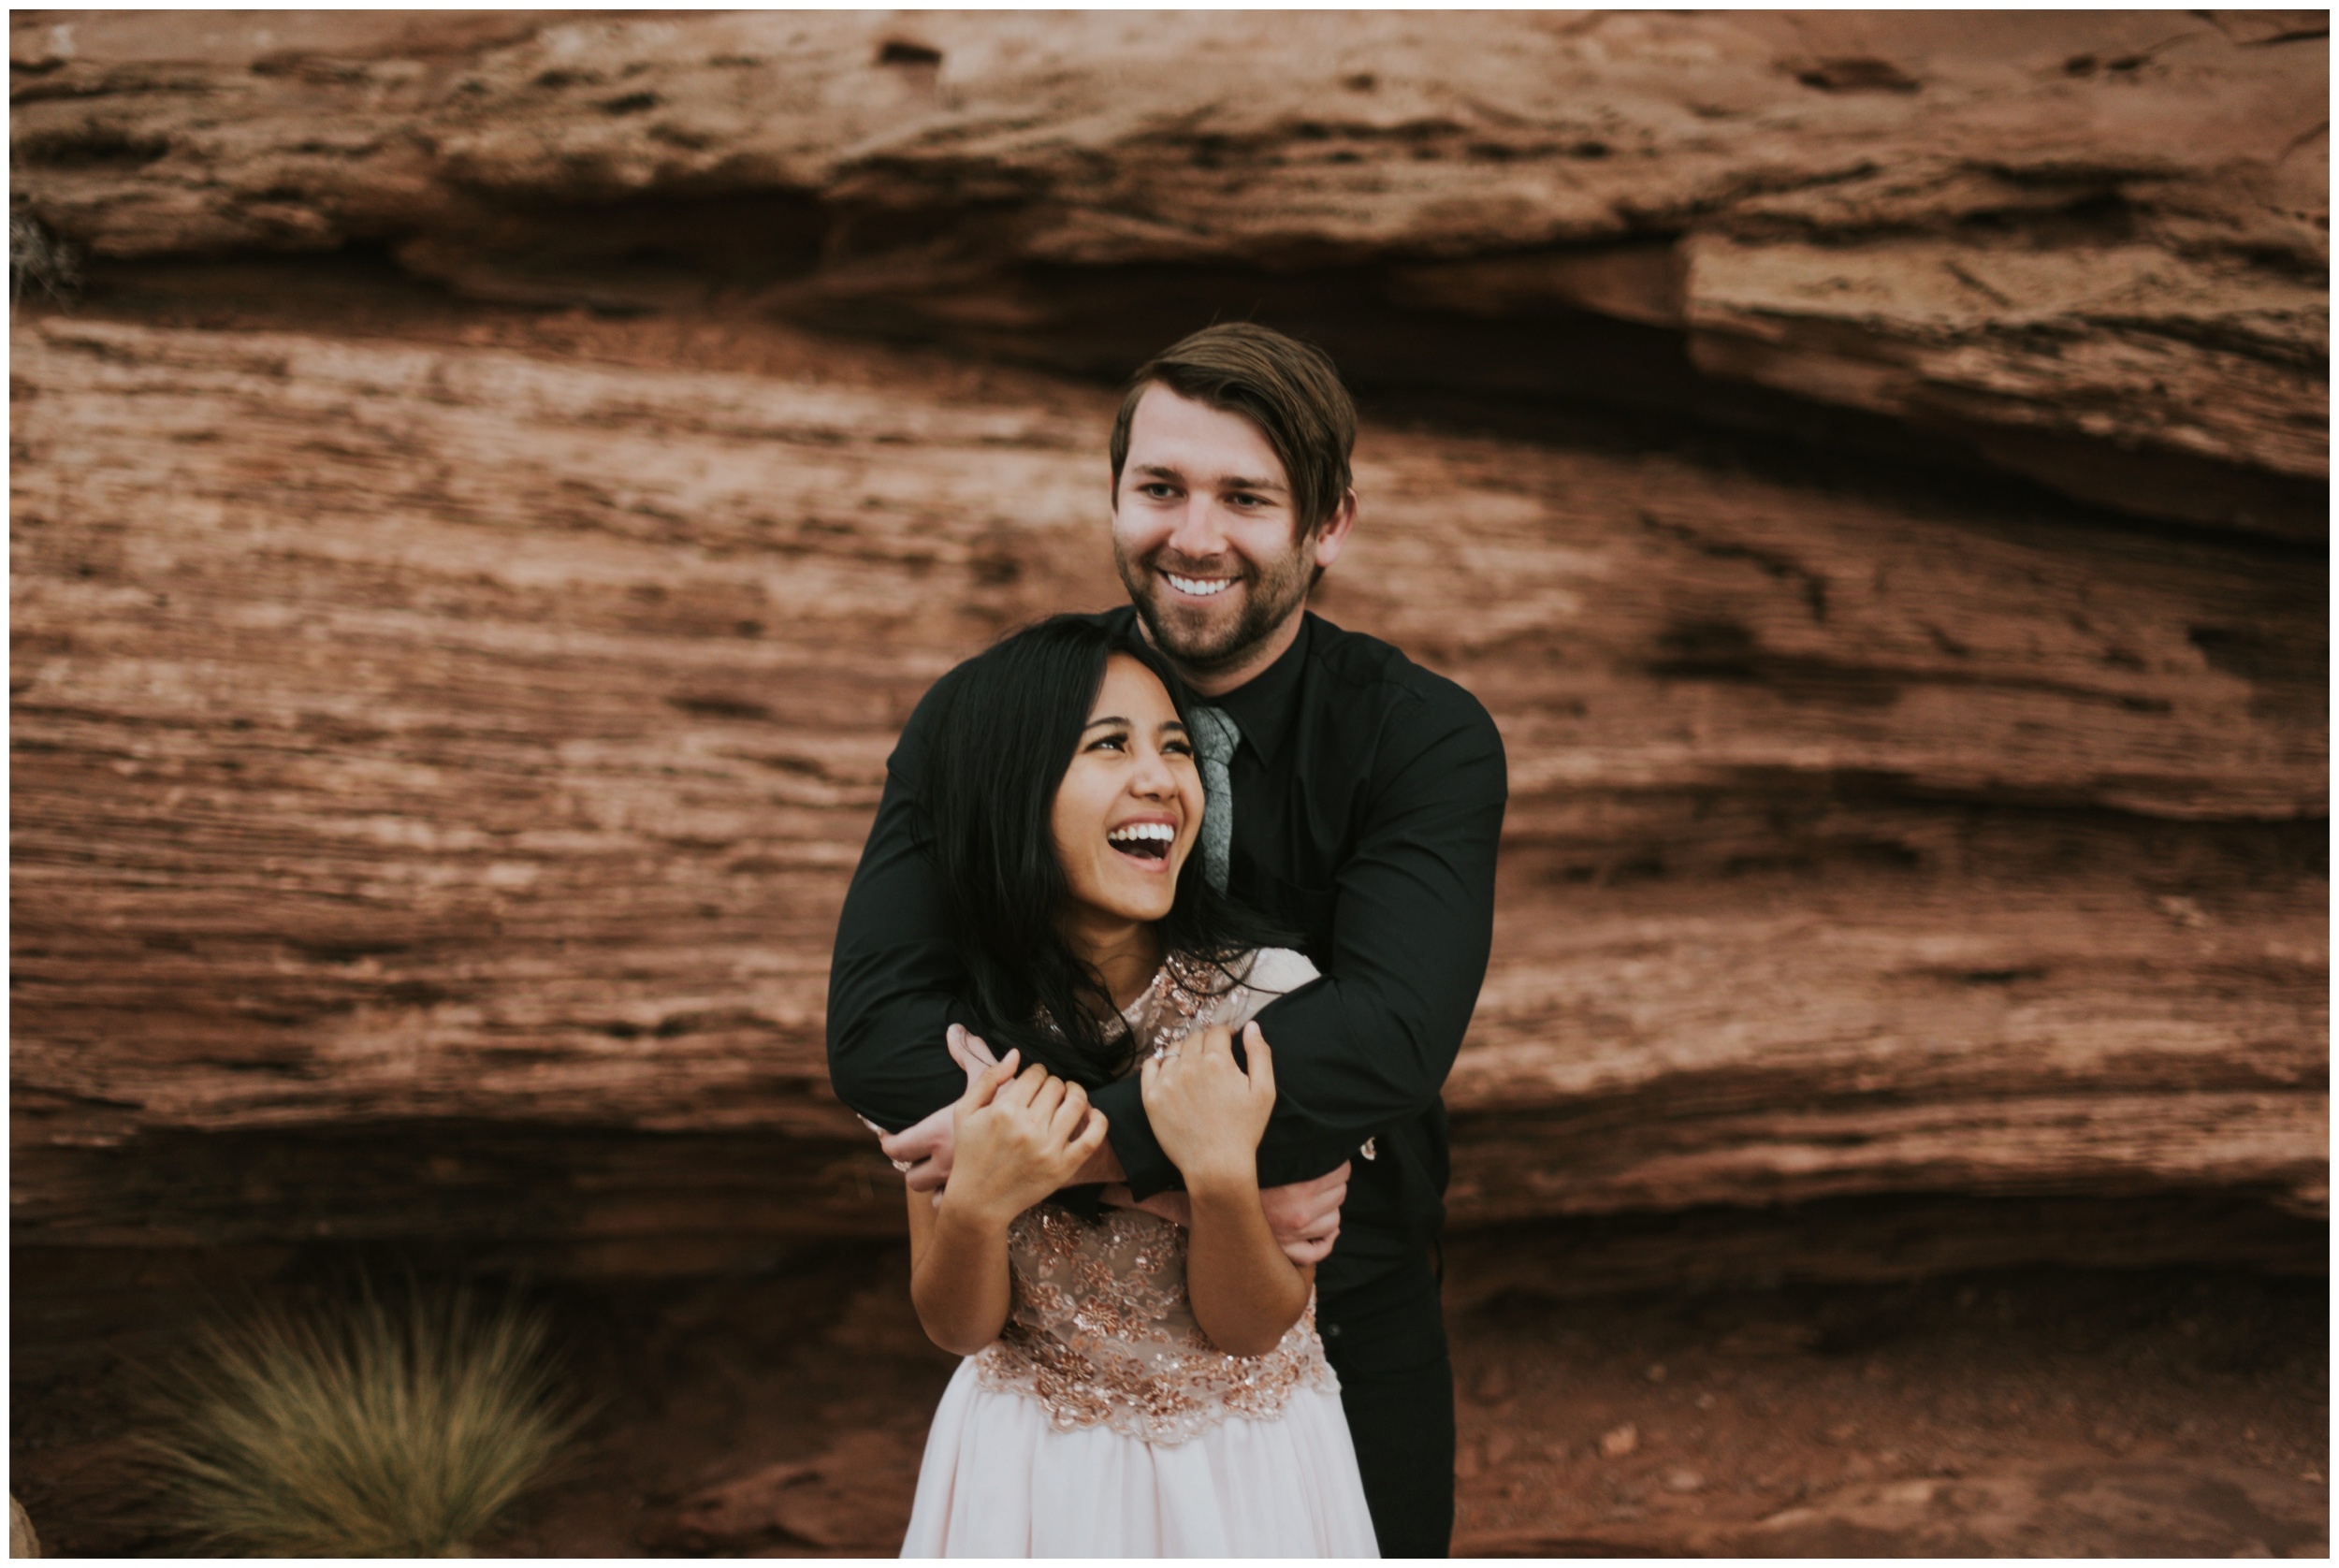 Guy wrapping girl up in his arms portrait photographer | Elopement Photographer www.riversandroadsphotography.com